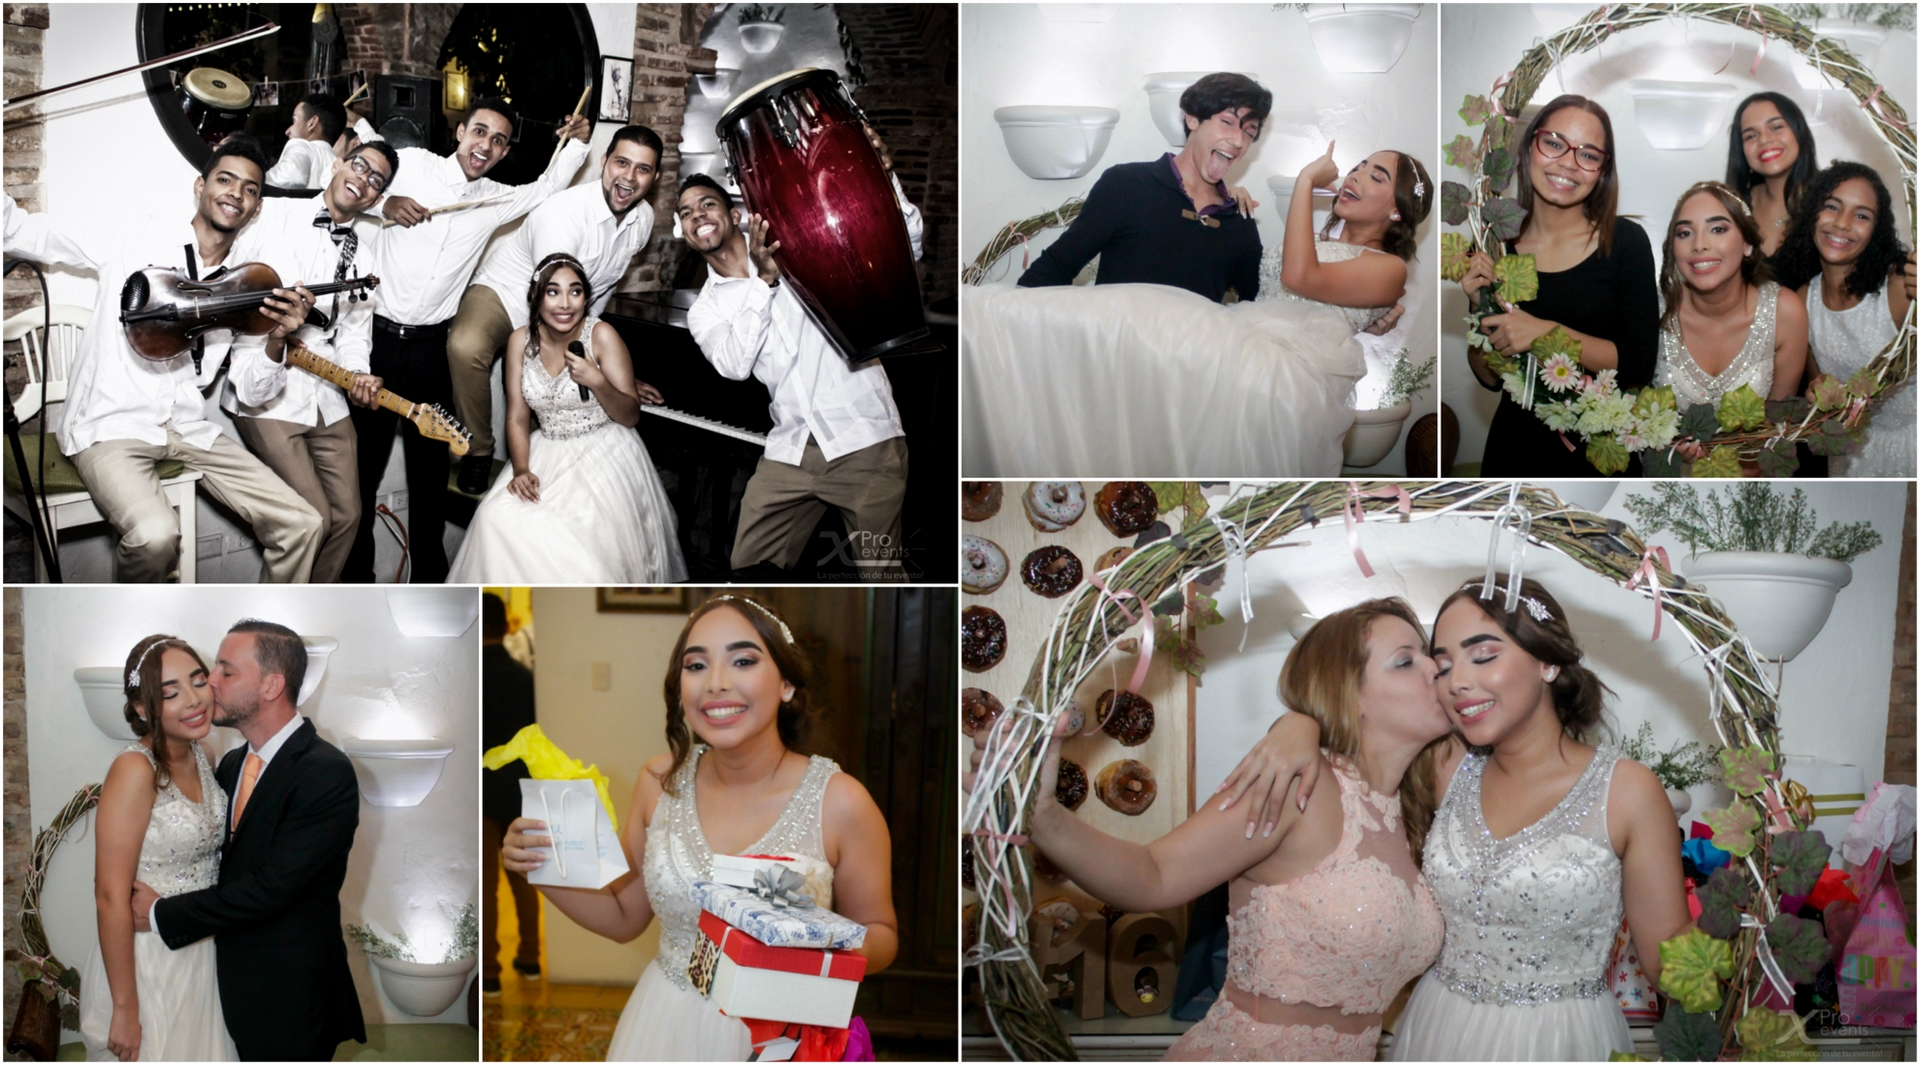 X Pro events - Quince Arianys Perez - Fotografia - Collage